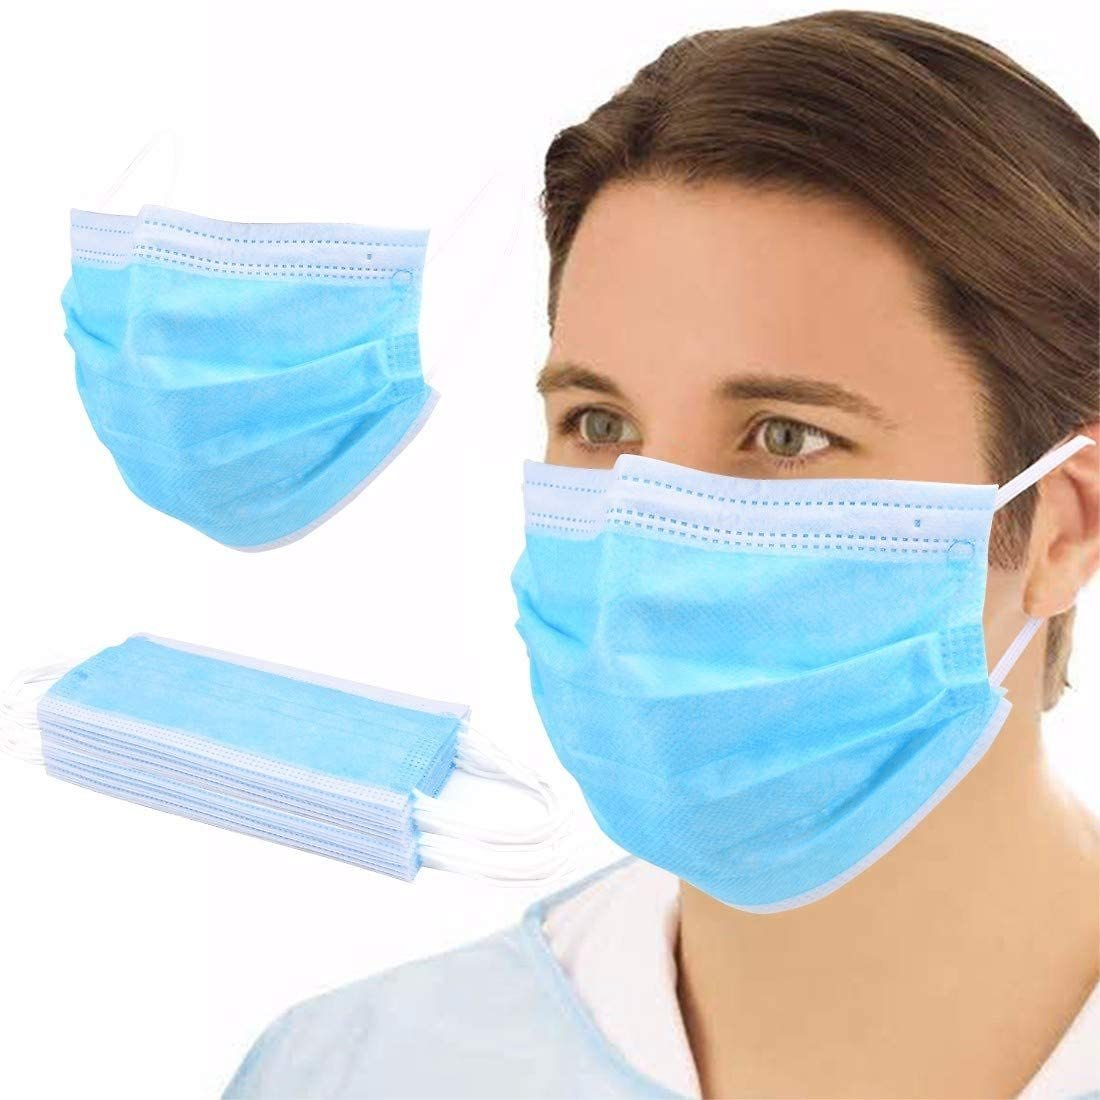 NJ058 50 Pieces Disposable 3-Ply Face Protective Cover Personal Protection Dust-Proof Masks